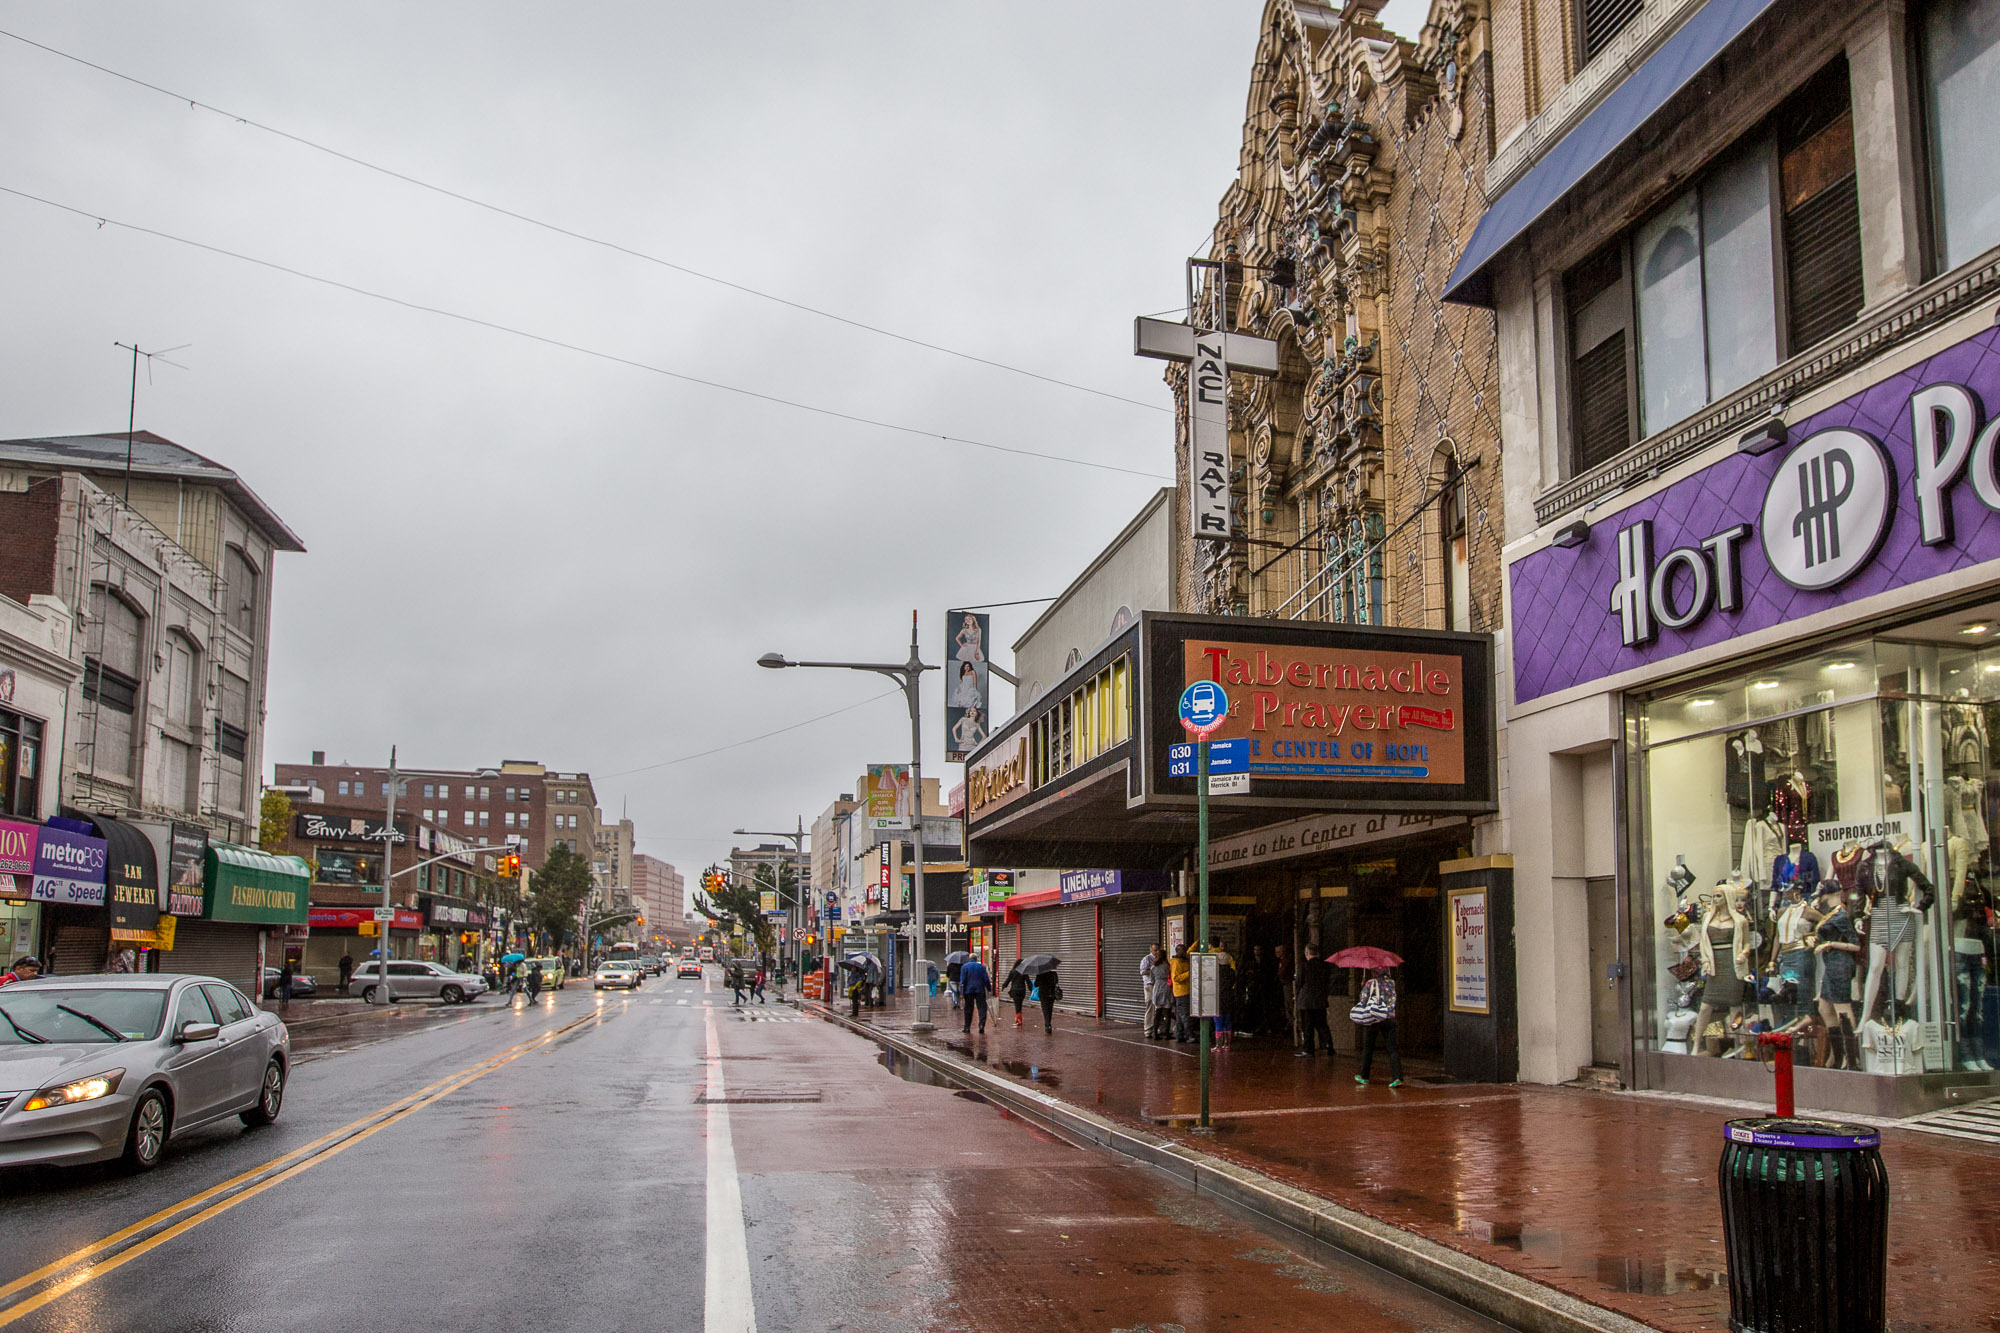 A street in Jamaica, Queens. The street is wet with rain. There are various stores and apartment buildings on both sides of the street.